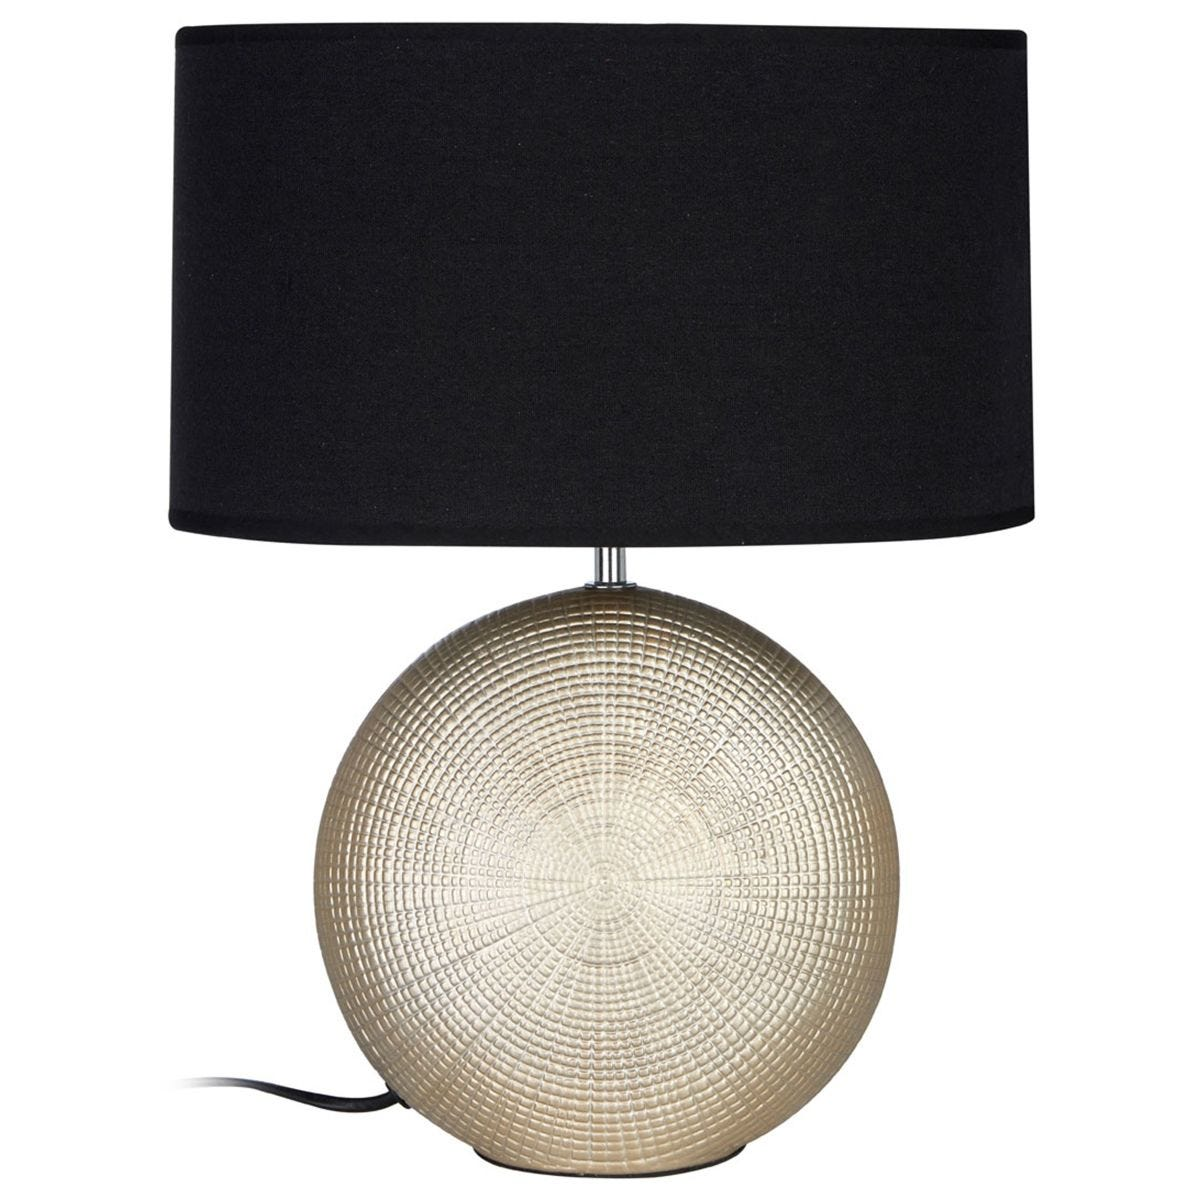 Premier Housewares Whisper Table Lamp in Gold Ceramic with Black Fabric Shade